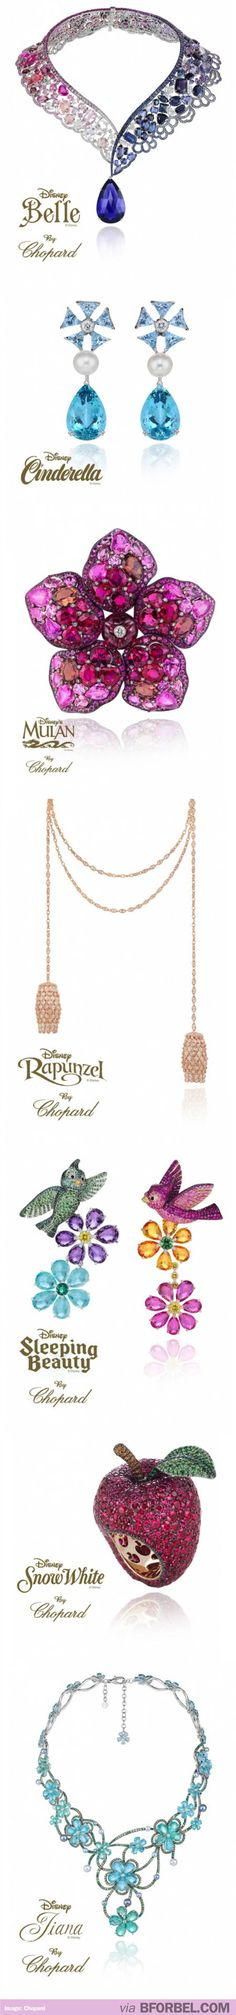 Disney Princess inspired Jewelry, by Chopard. They're a little gaudy, but I kinda like some of them.